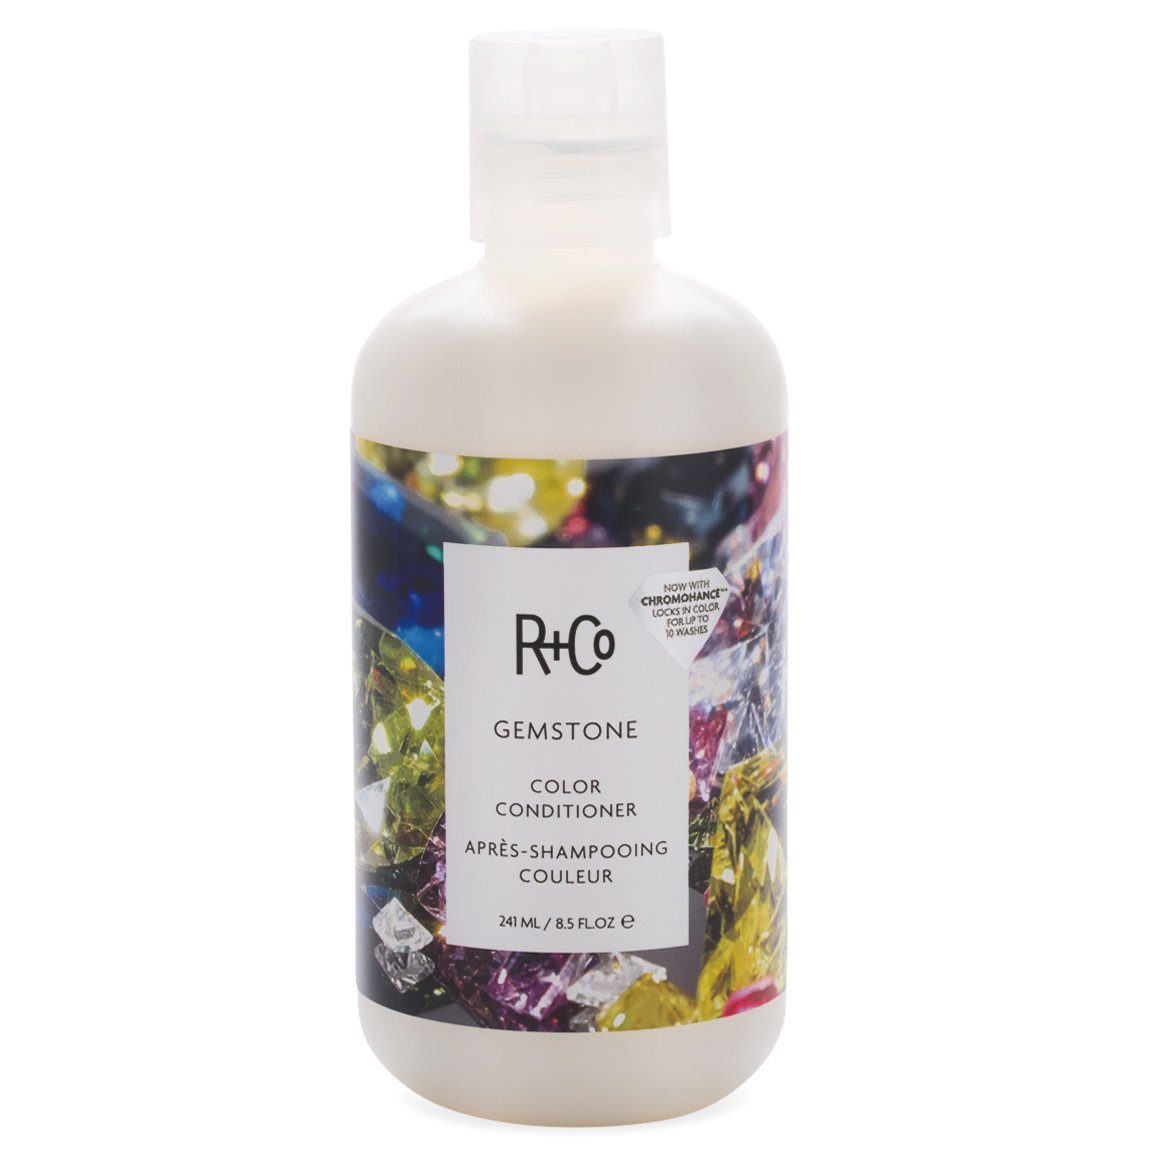 R+Co Gemstone Color Conditioner 8.5 oz product swatch.